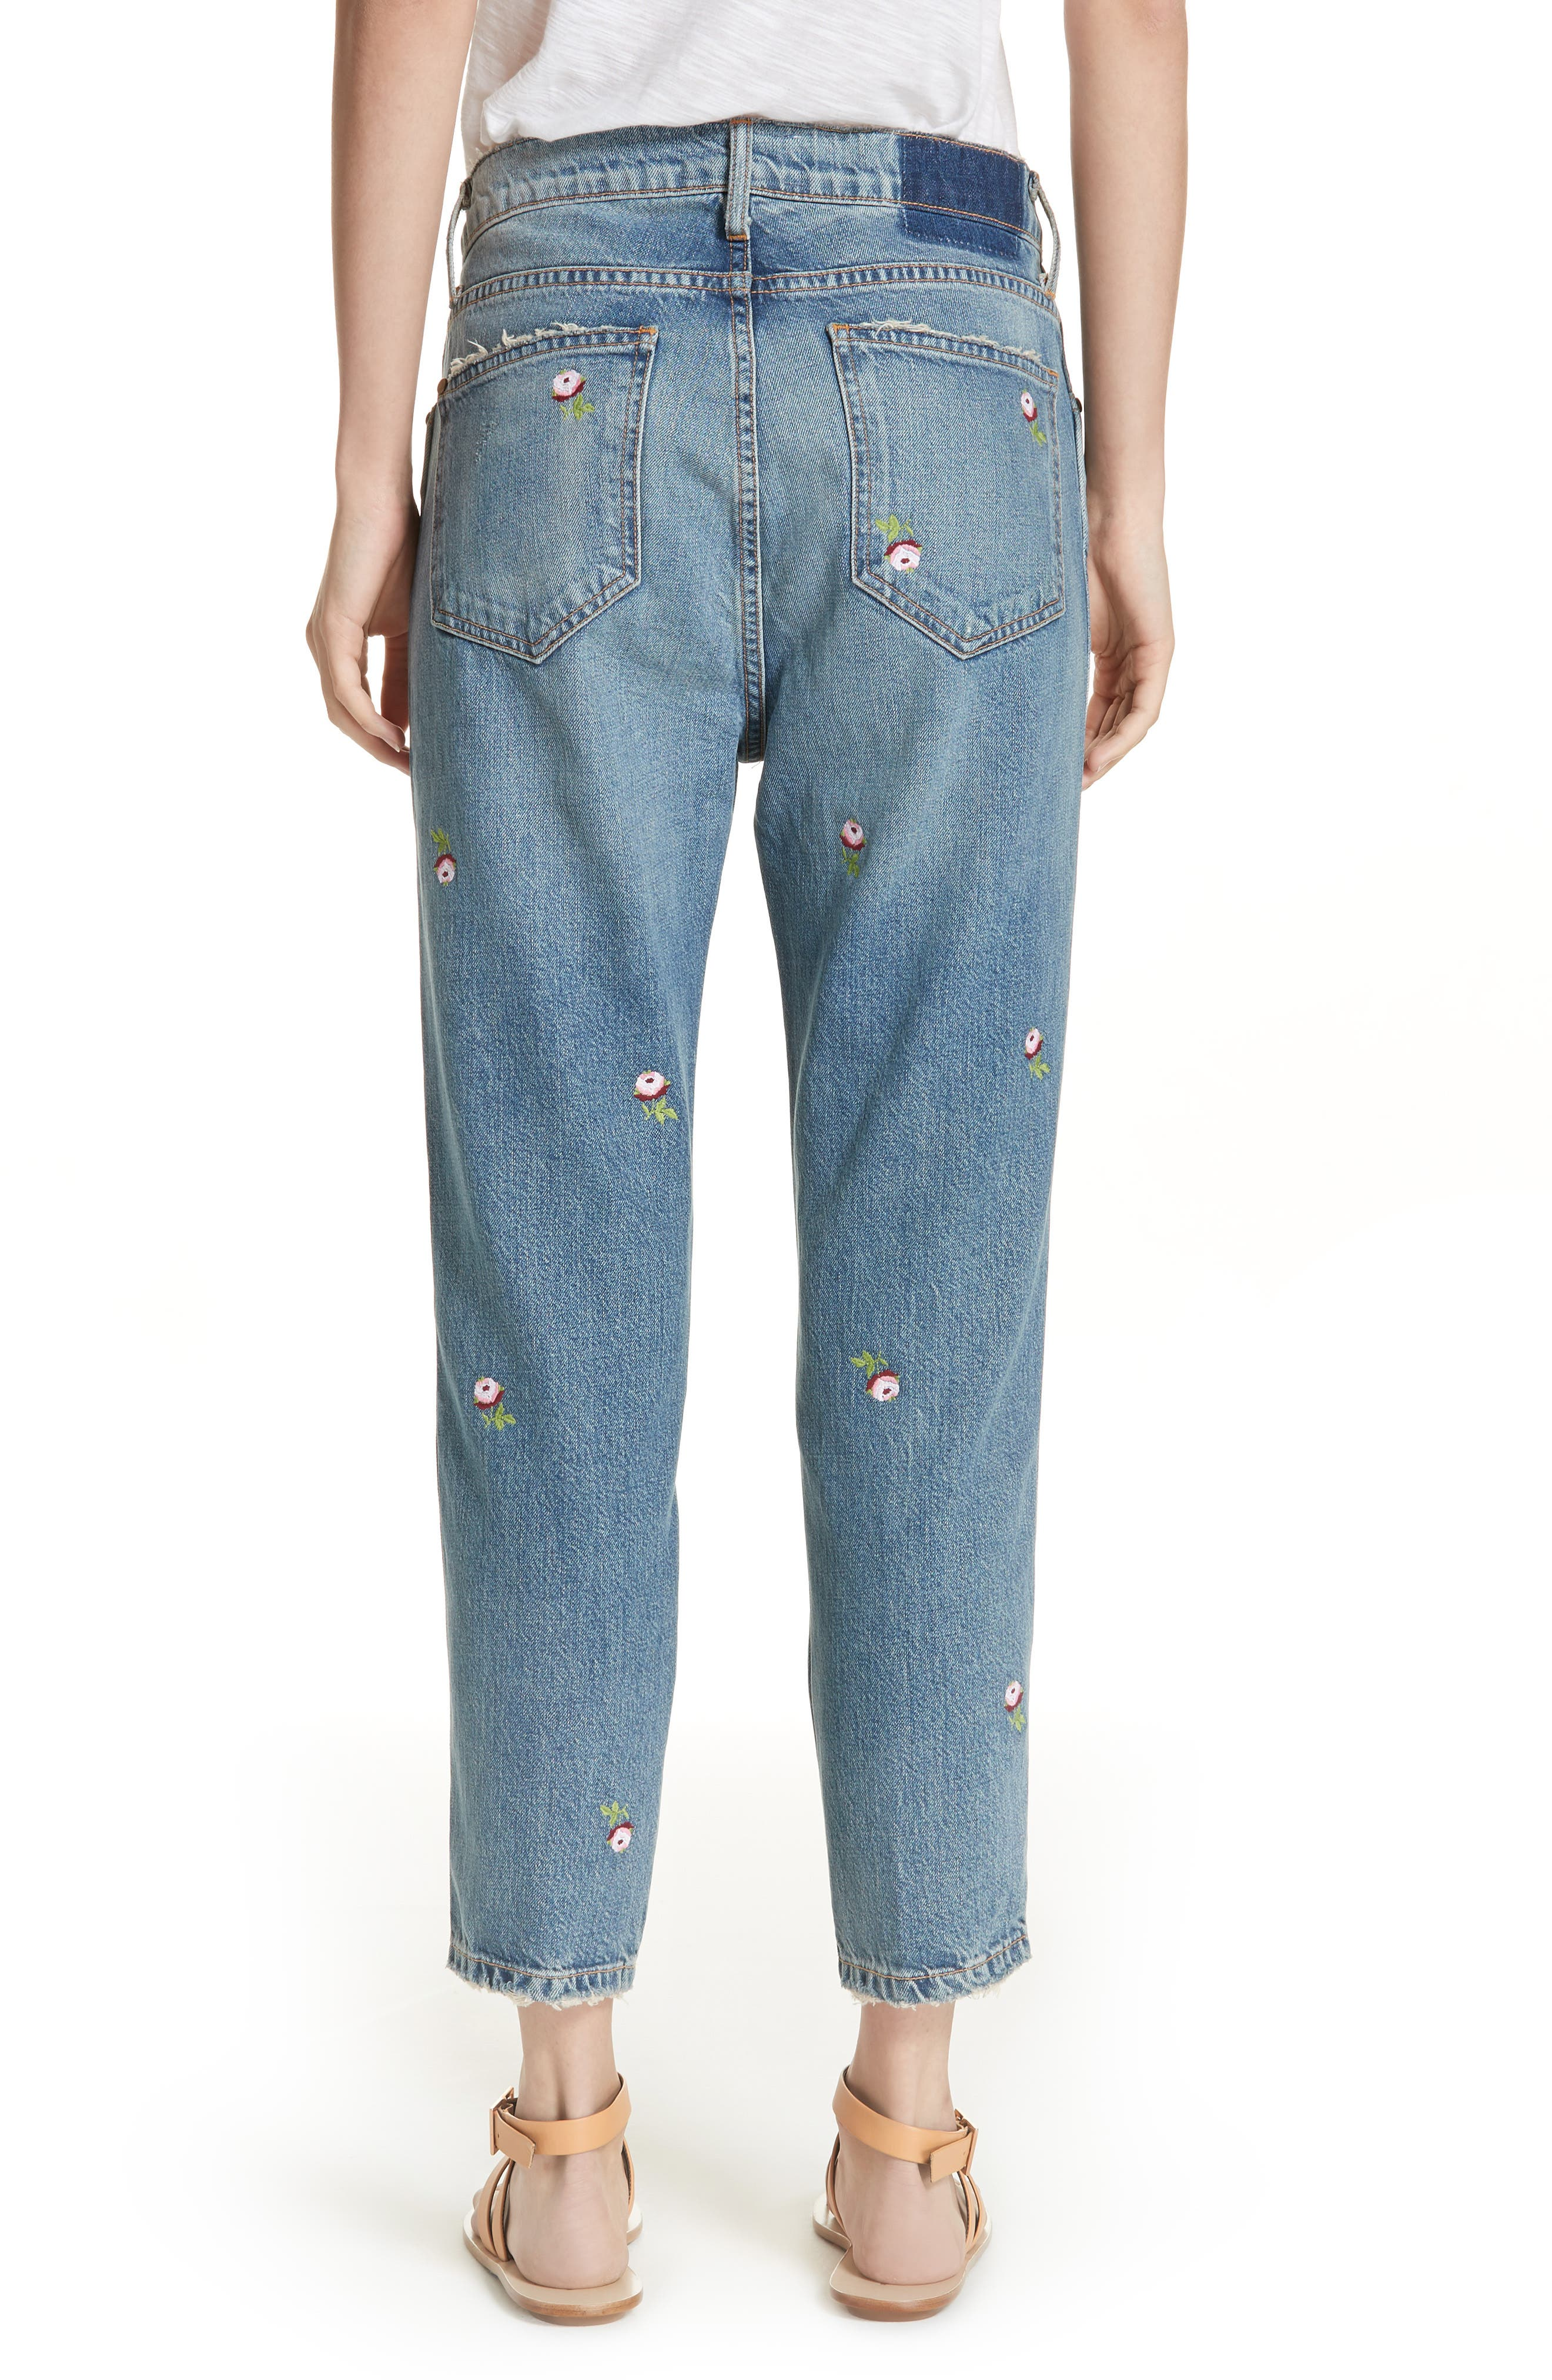 The Rigid Fellow Floral Embroidered Jeans,                             Alternate thumbnail 2, color,                             PRAIRIE WASH W/ ROSETTE